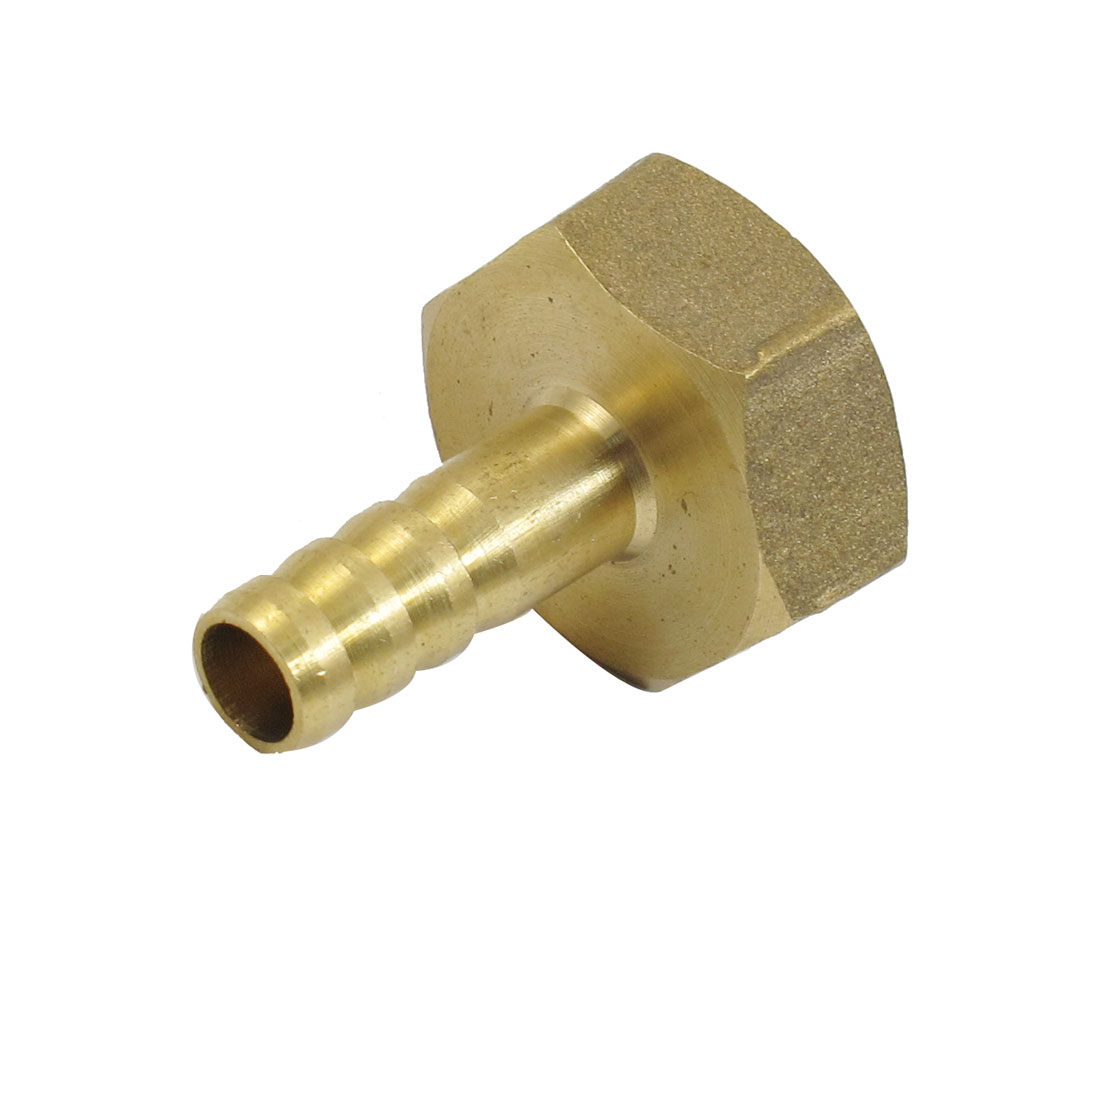 6mm Fuel Hose Barb x 1/2PT Female Thread Straight Coupling Brass Fitting